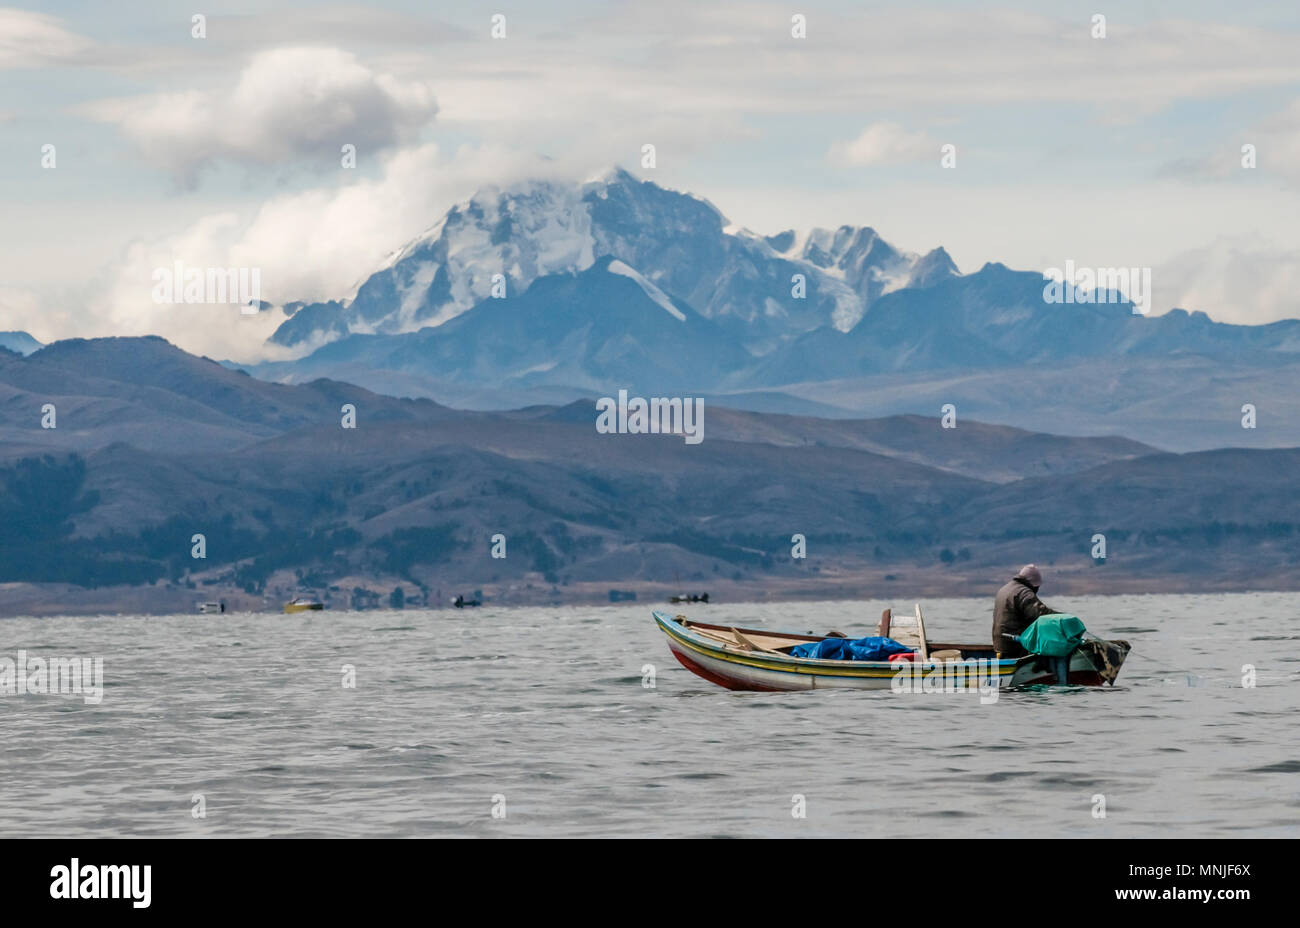 A fishing boat on Lake Titicaca, with Huayna Potosi in the background. - Stock Image